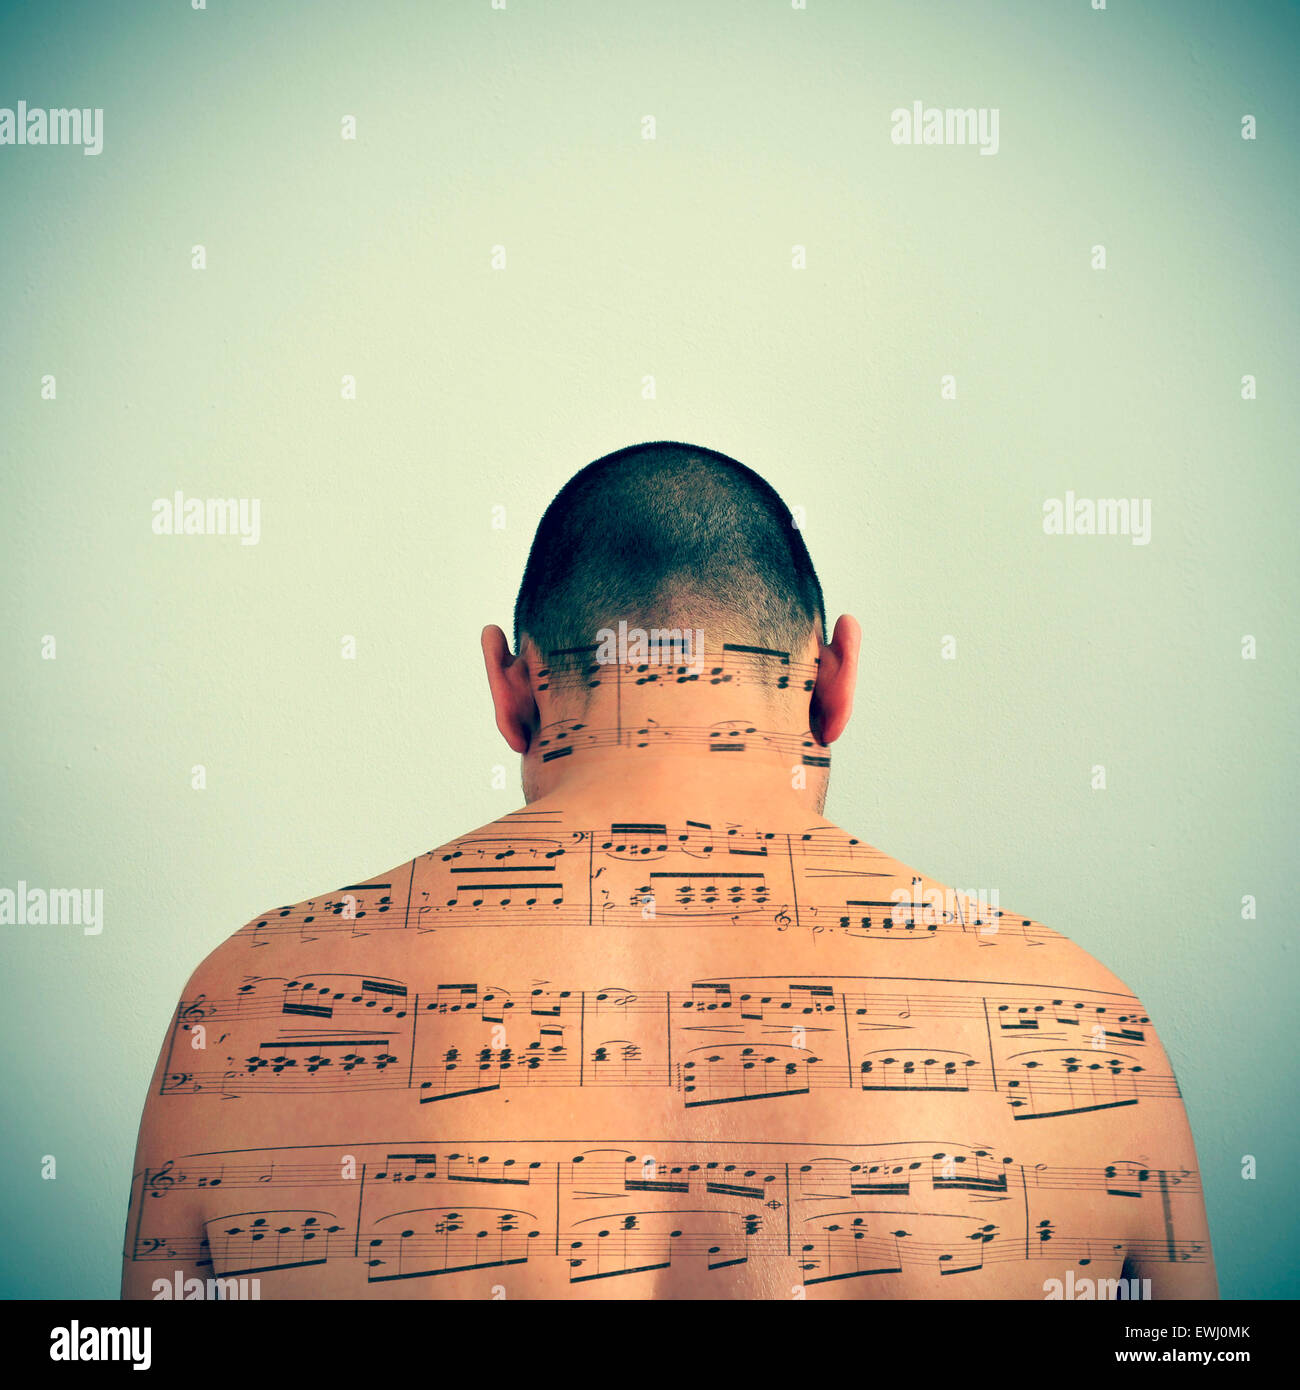 a young caucasian man with a musical score patterned in his back, with a retro effect - Stock Image